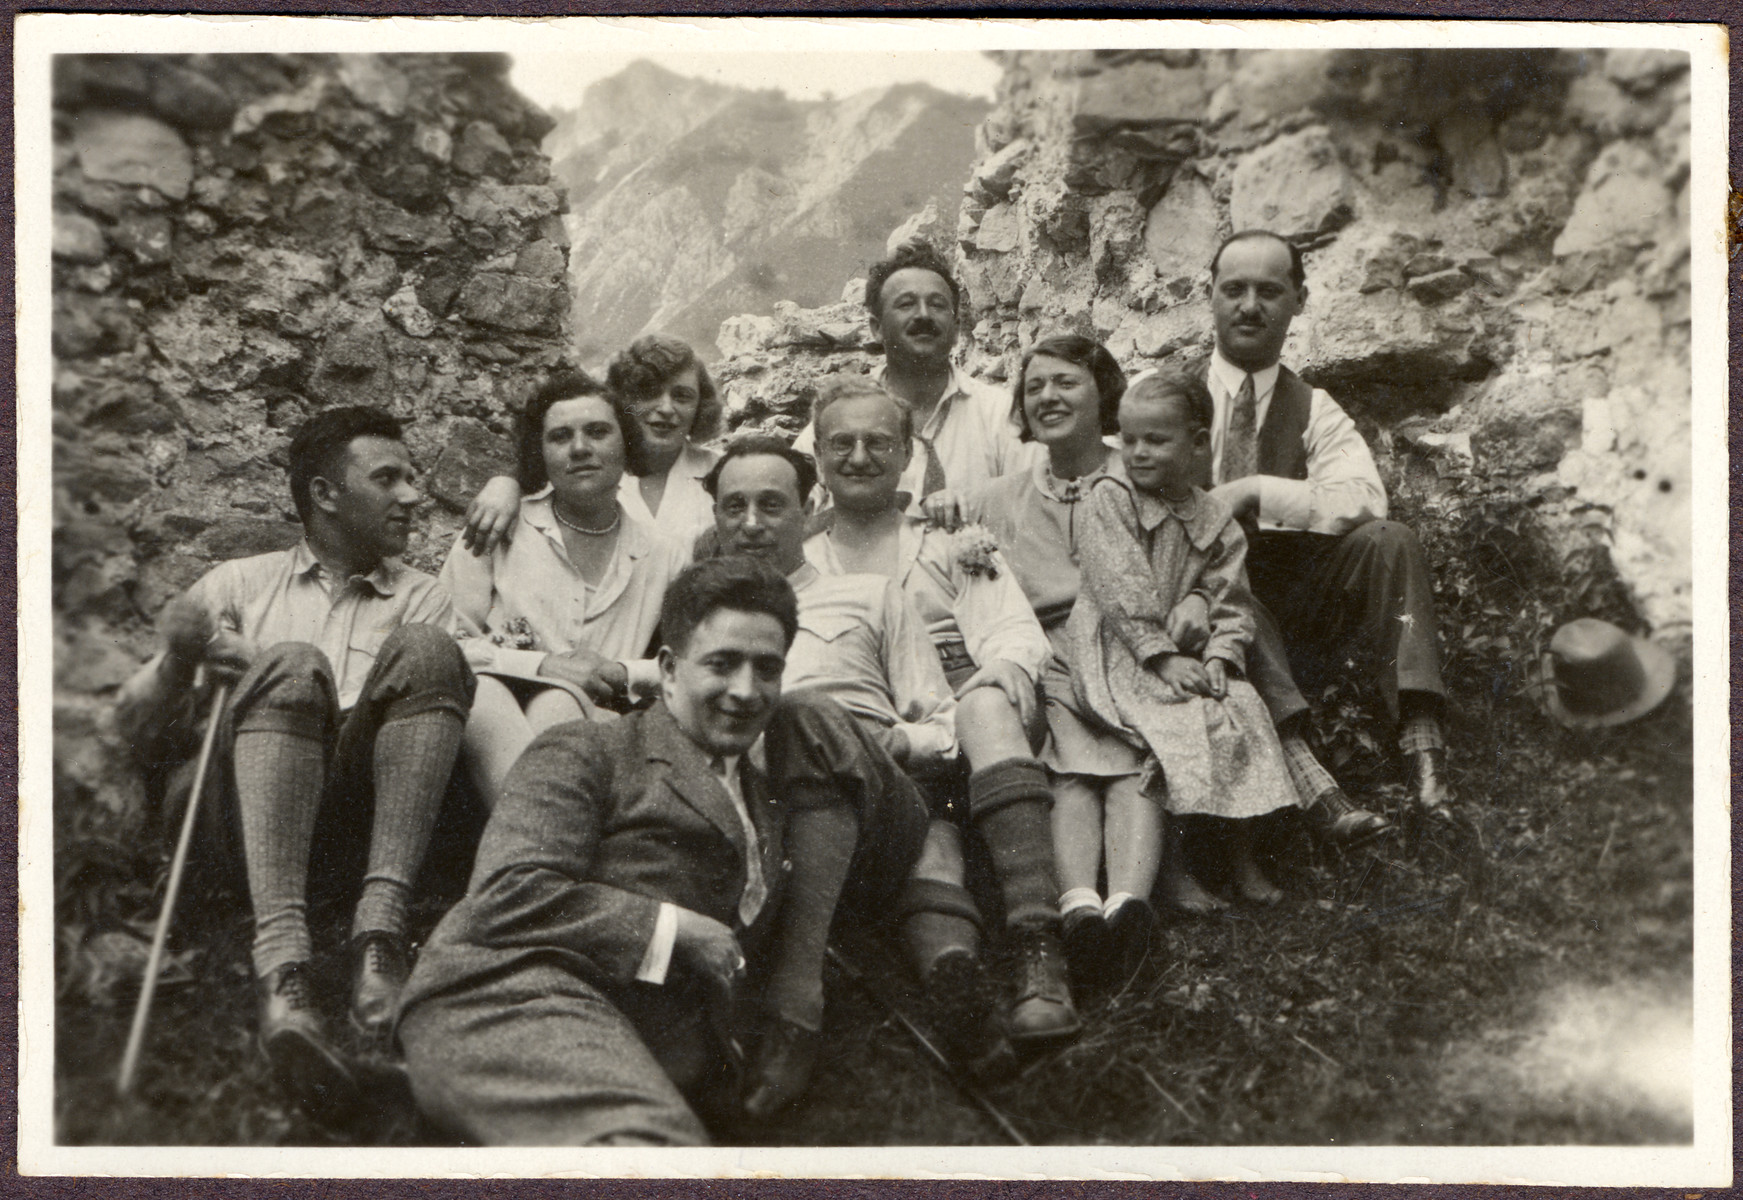 Gerta Stoessler Engel goes hiking with her friends in prewar Austria.  Greta is pictured in the second row, third from the left.  Her sister Stella is pictured in the second row, third from the right.